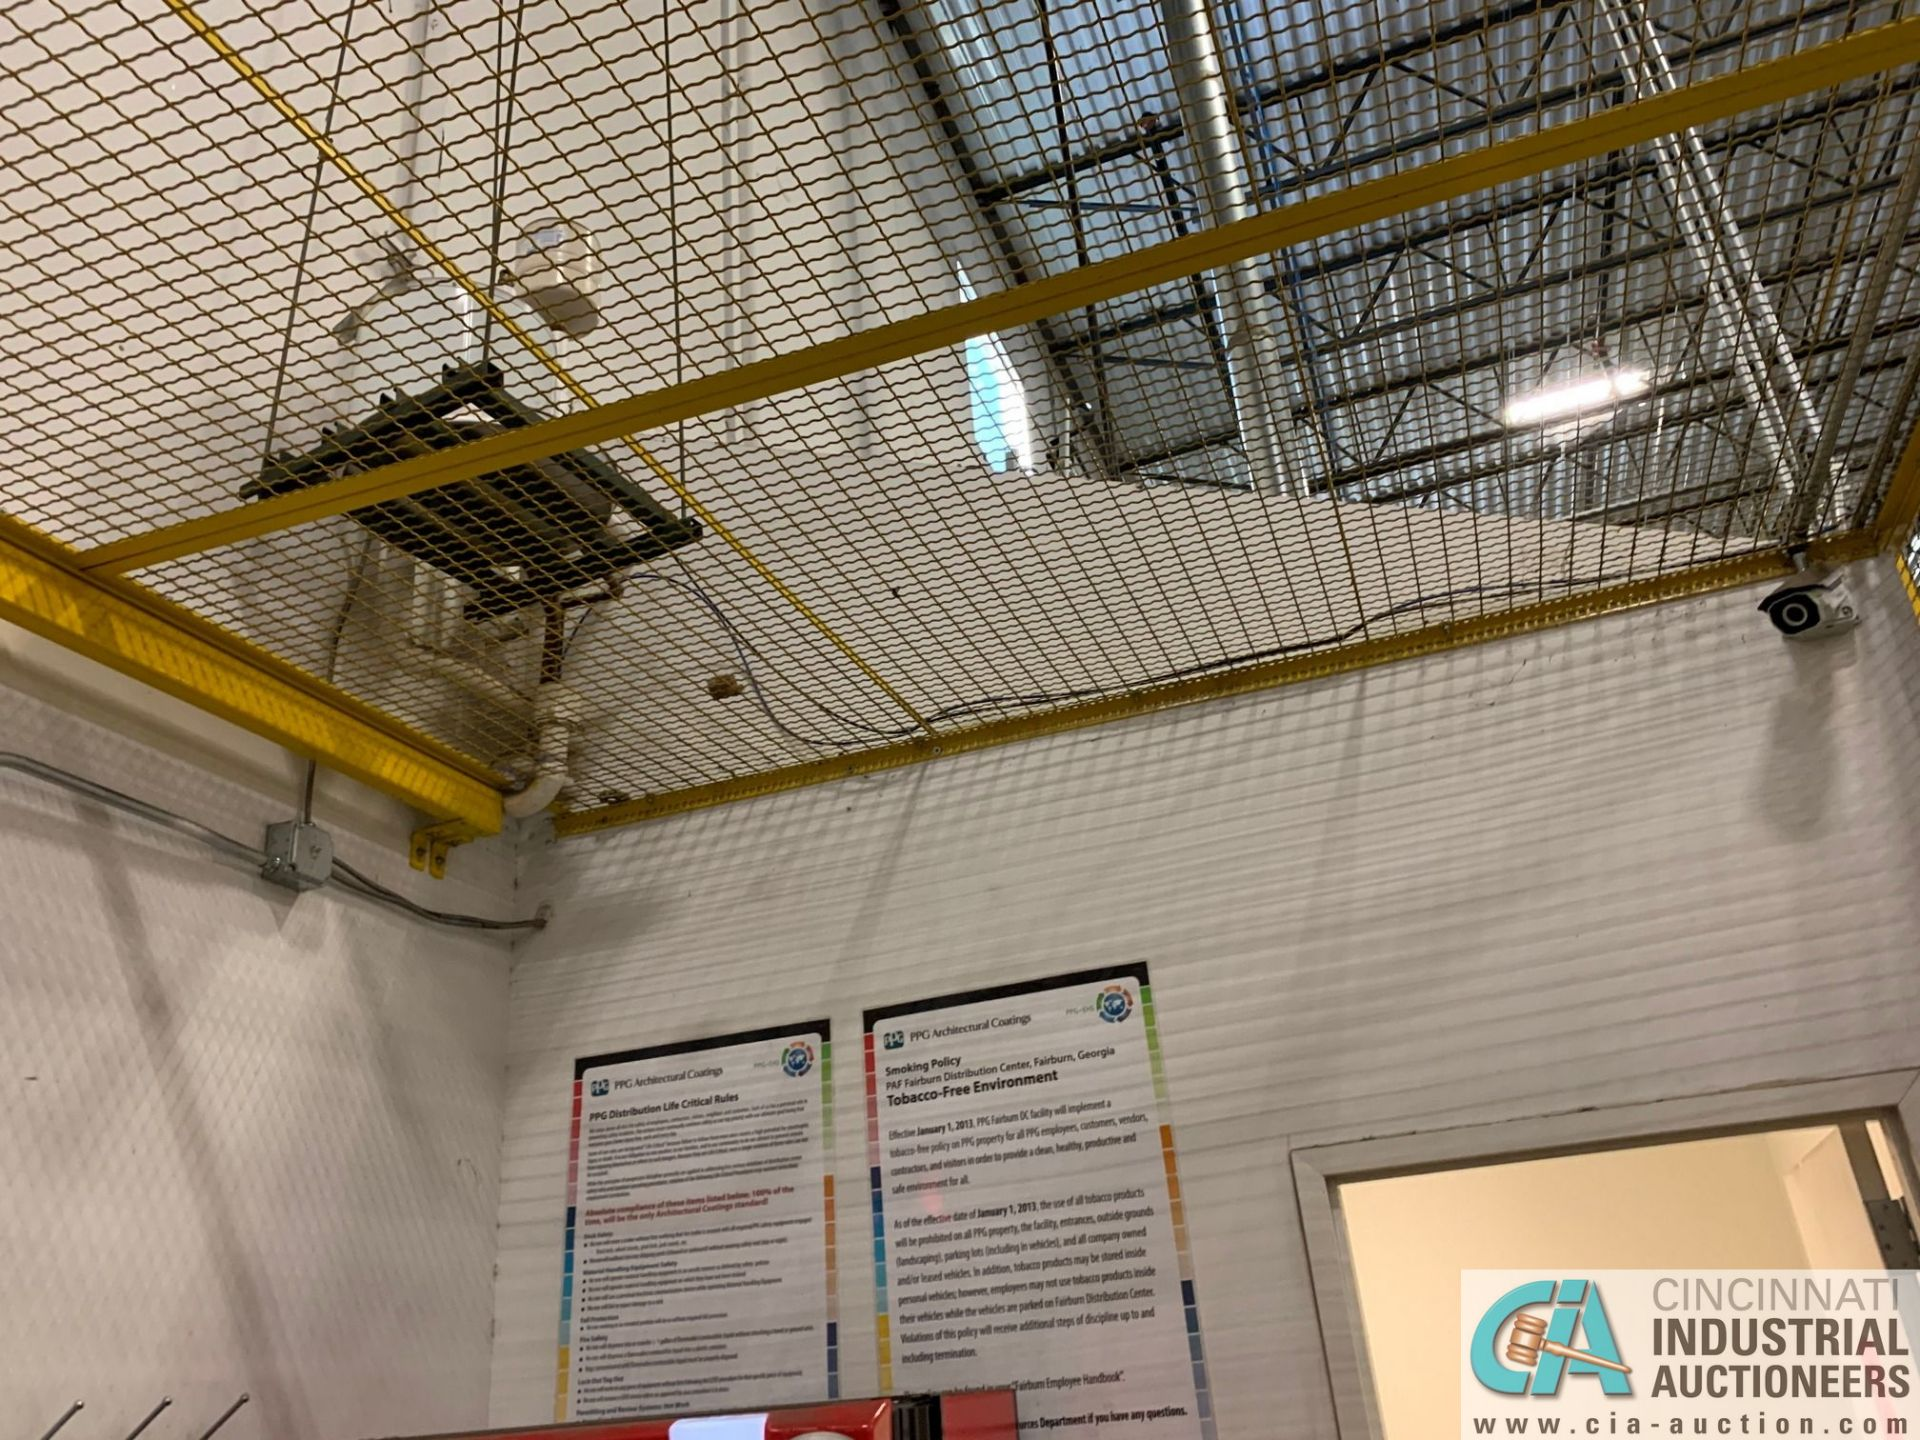 SAFETY CAGE - BACK DRIVERS (5400 OAKLEY INDUSTRIAL BLVD., FAIRBURN, GA 30213) - Image 6 of 7